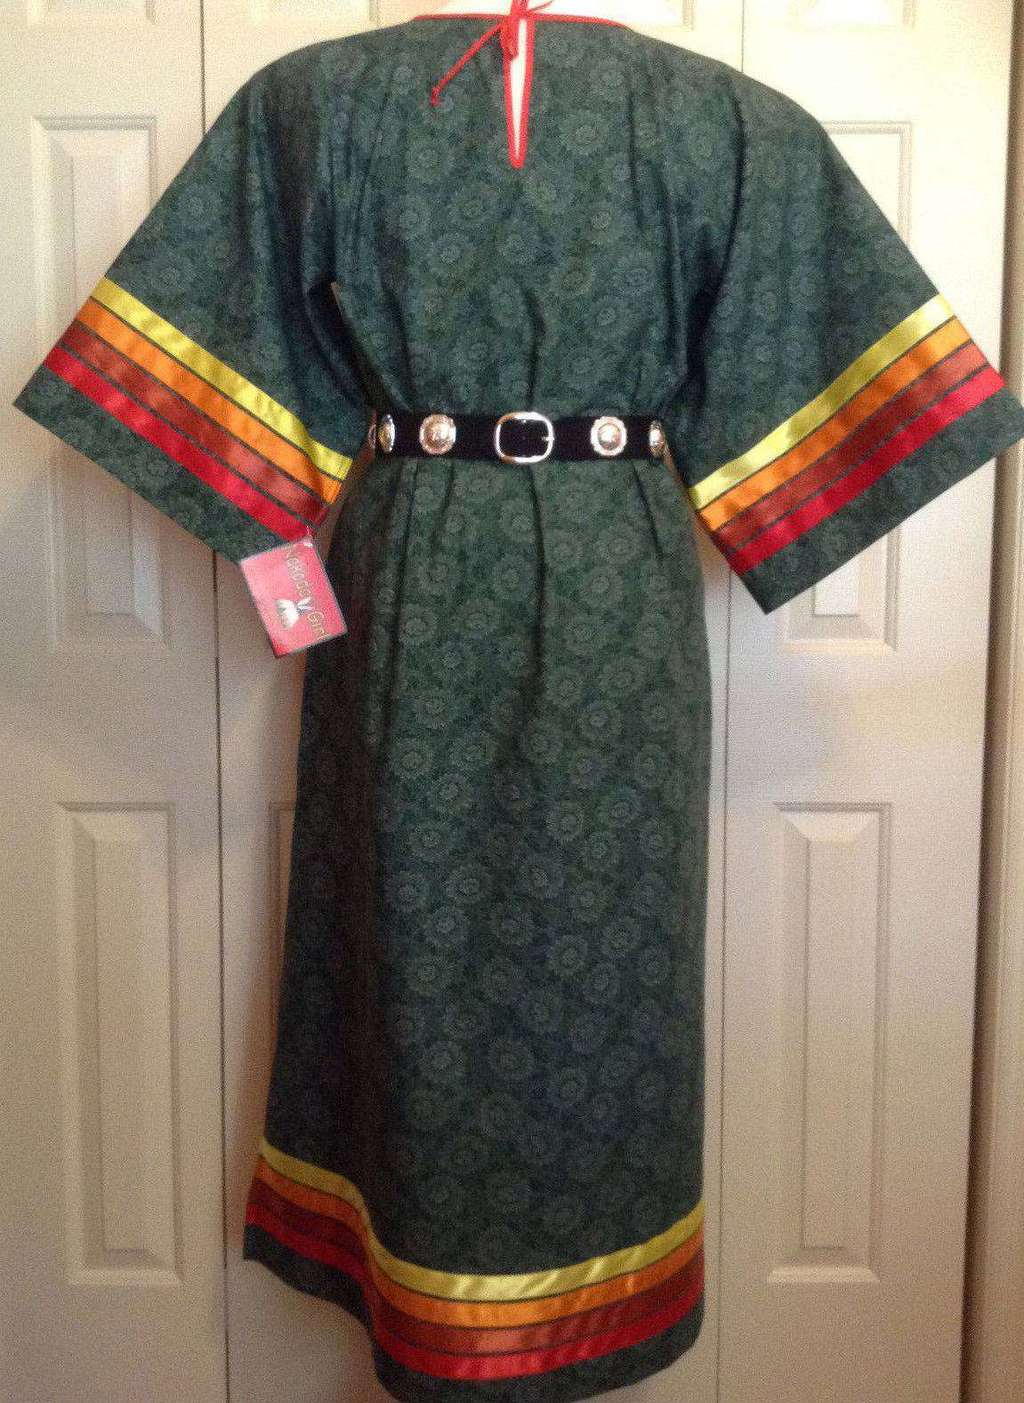 Native American Regalia*NAKODA MADE*Ladies Pow Wow GREEN Ribbon Dress Size 18-20 – eBay find of the week - PowWows.com – Native American Pow Wows